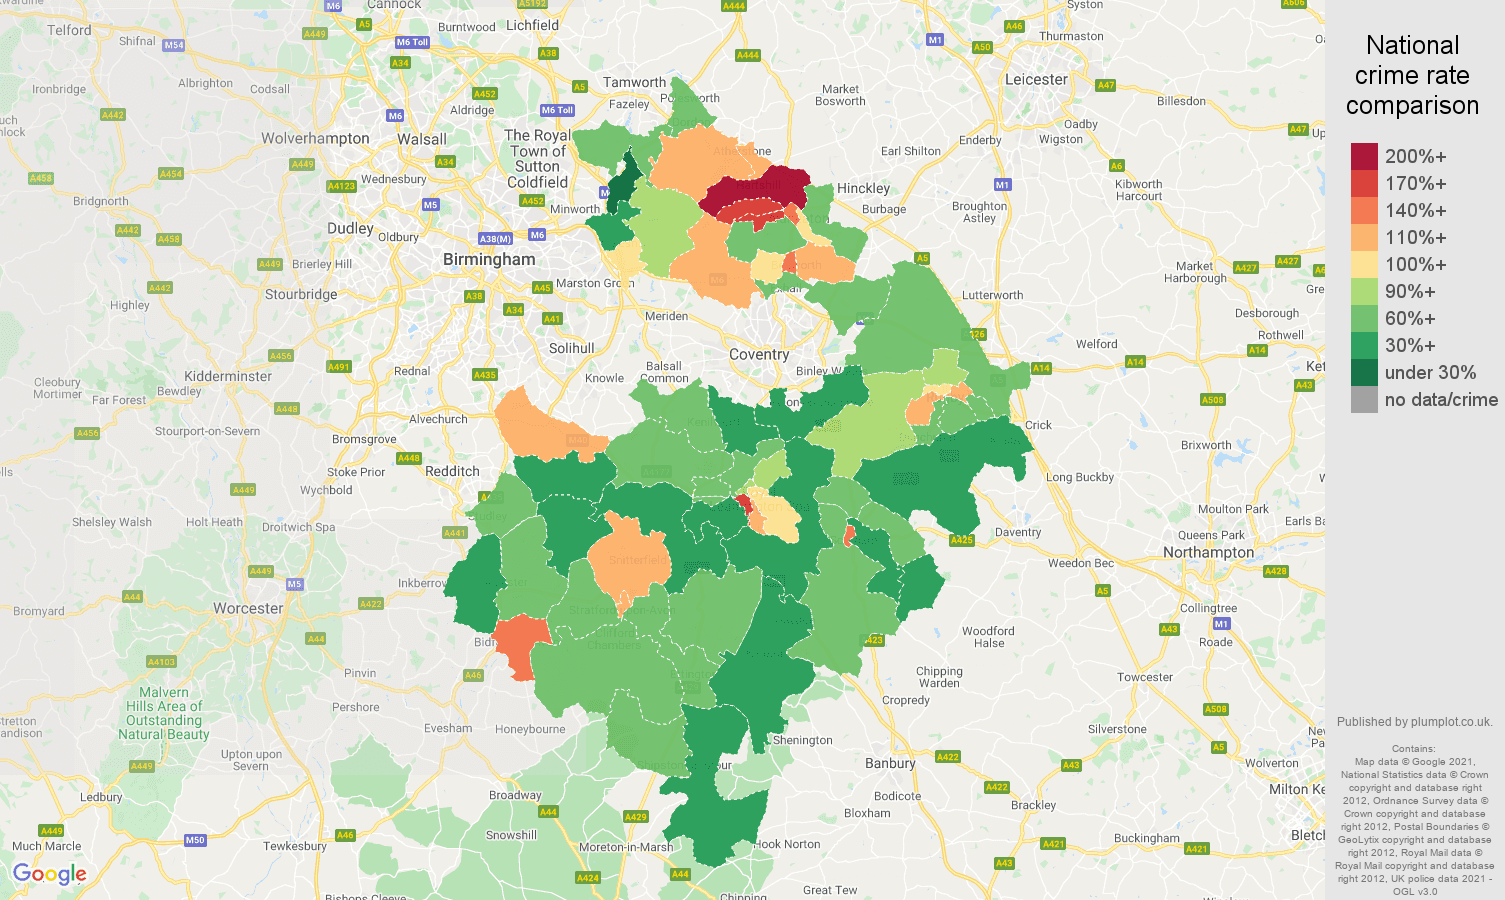 Warwickshire antisocial behaviour crime rate comparison map